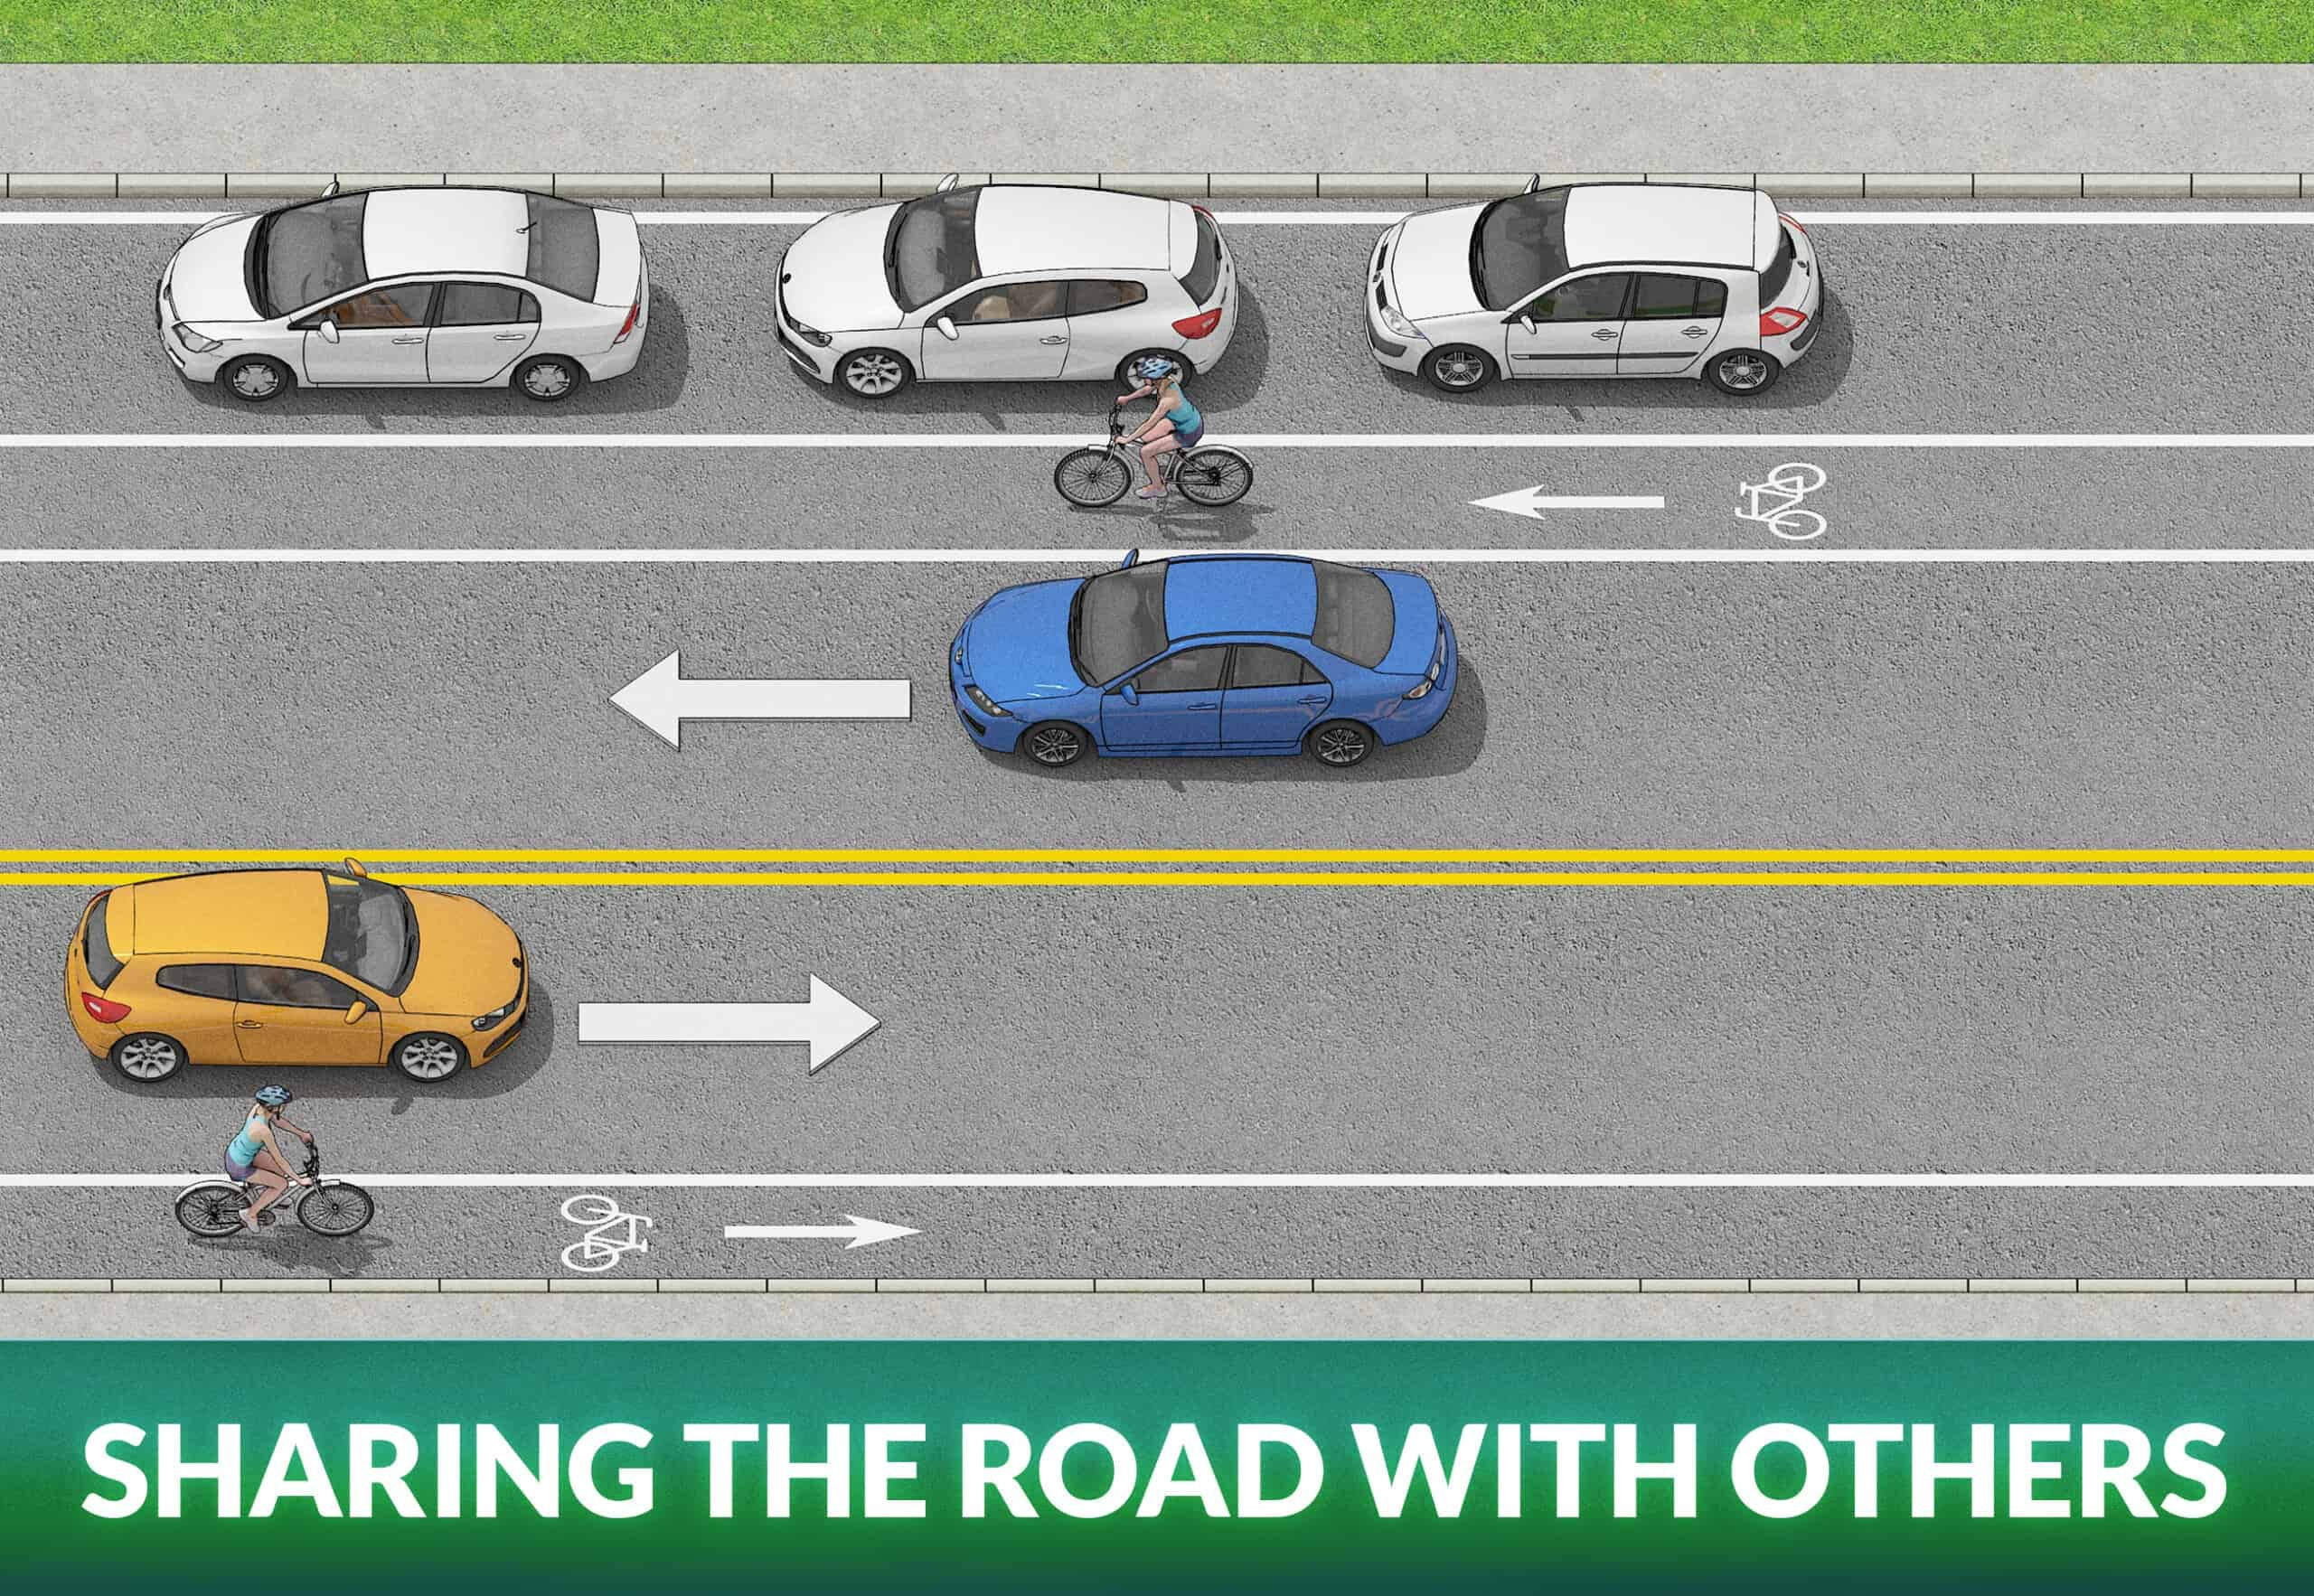 SHARING THE ROAD WITH OTHERS